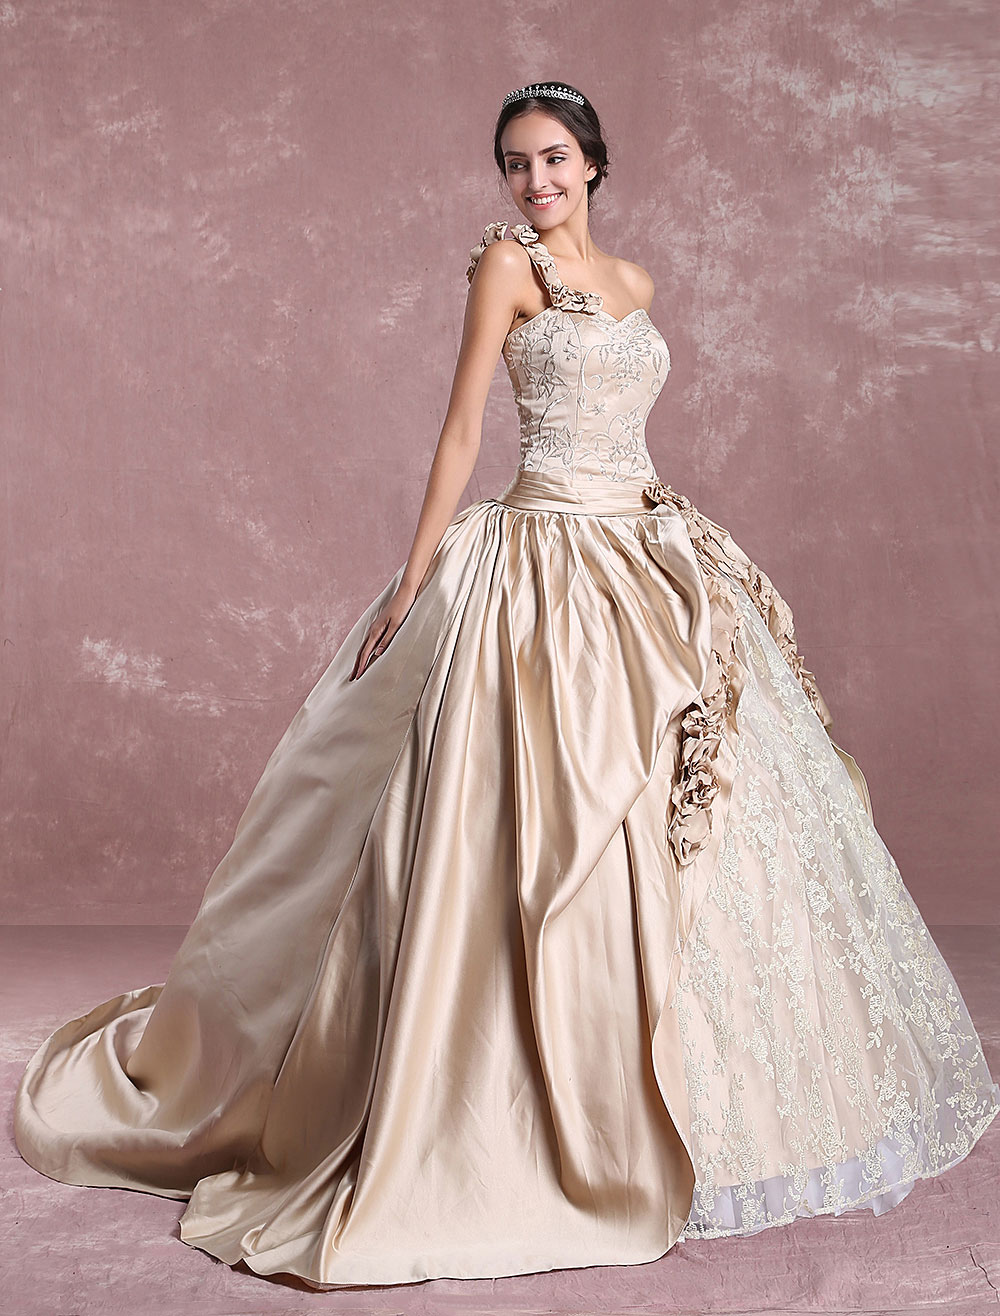 Princess Wedding Dresses Champagne Victoria Bridal Gown One Shoulder Lace Embroidered Satin No